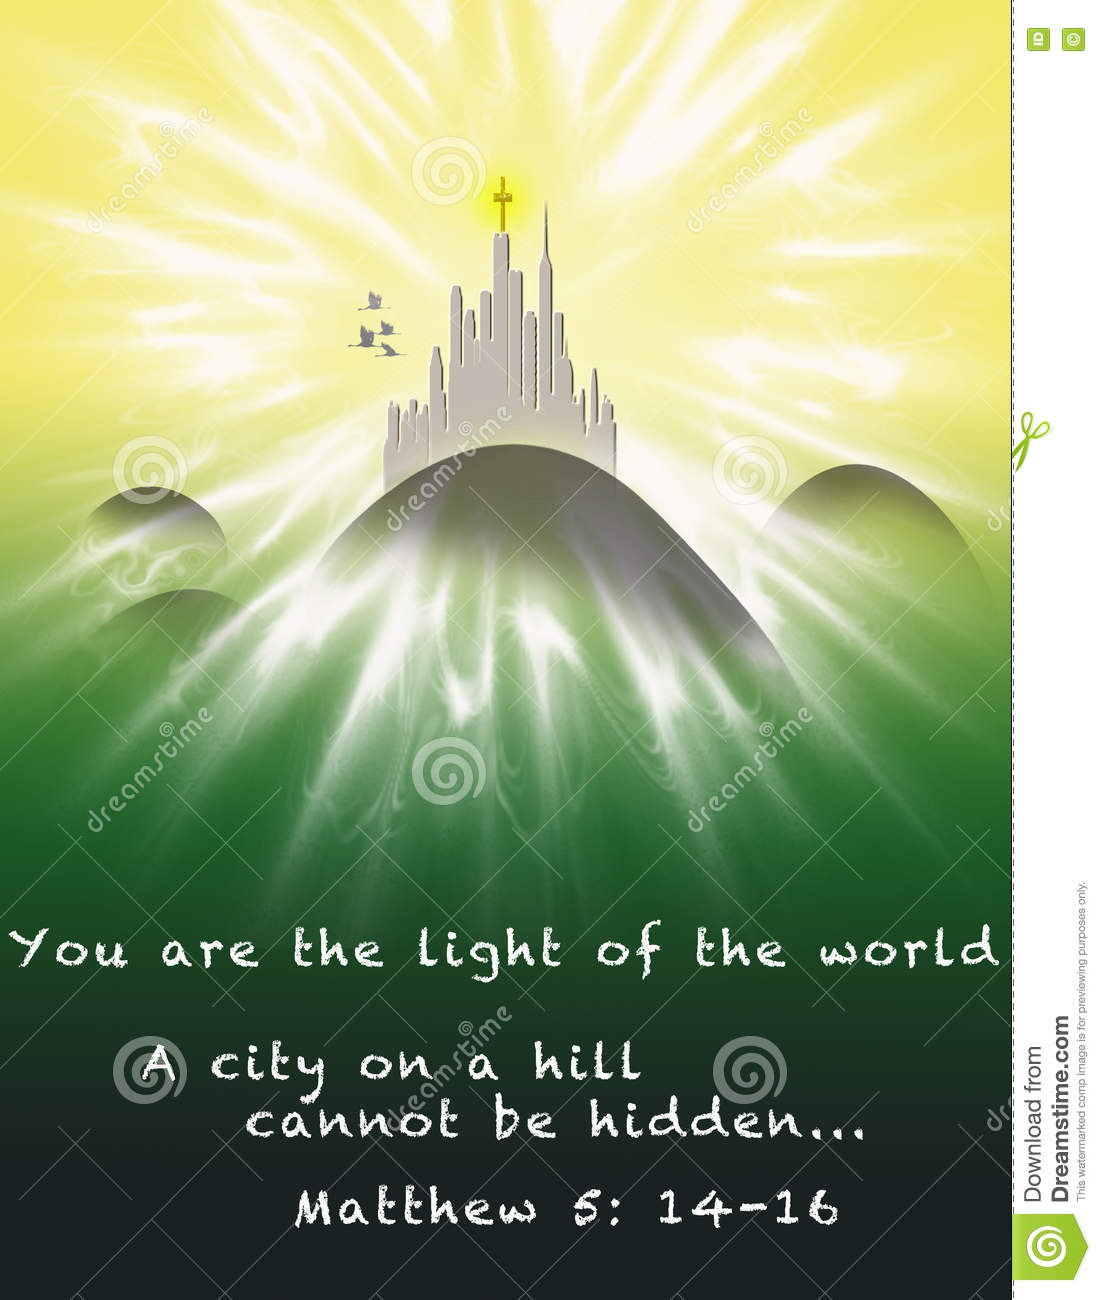 city on a hill quote